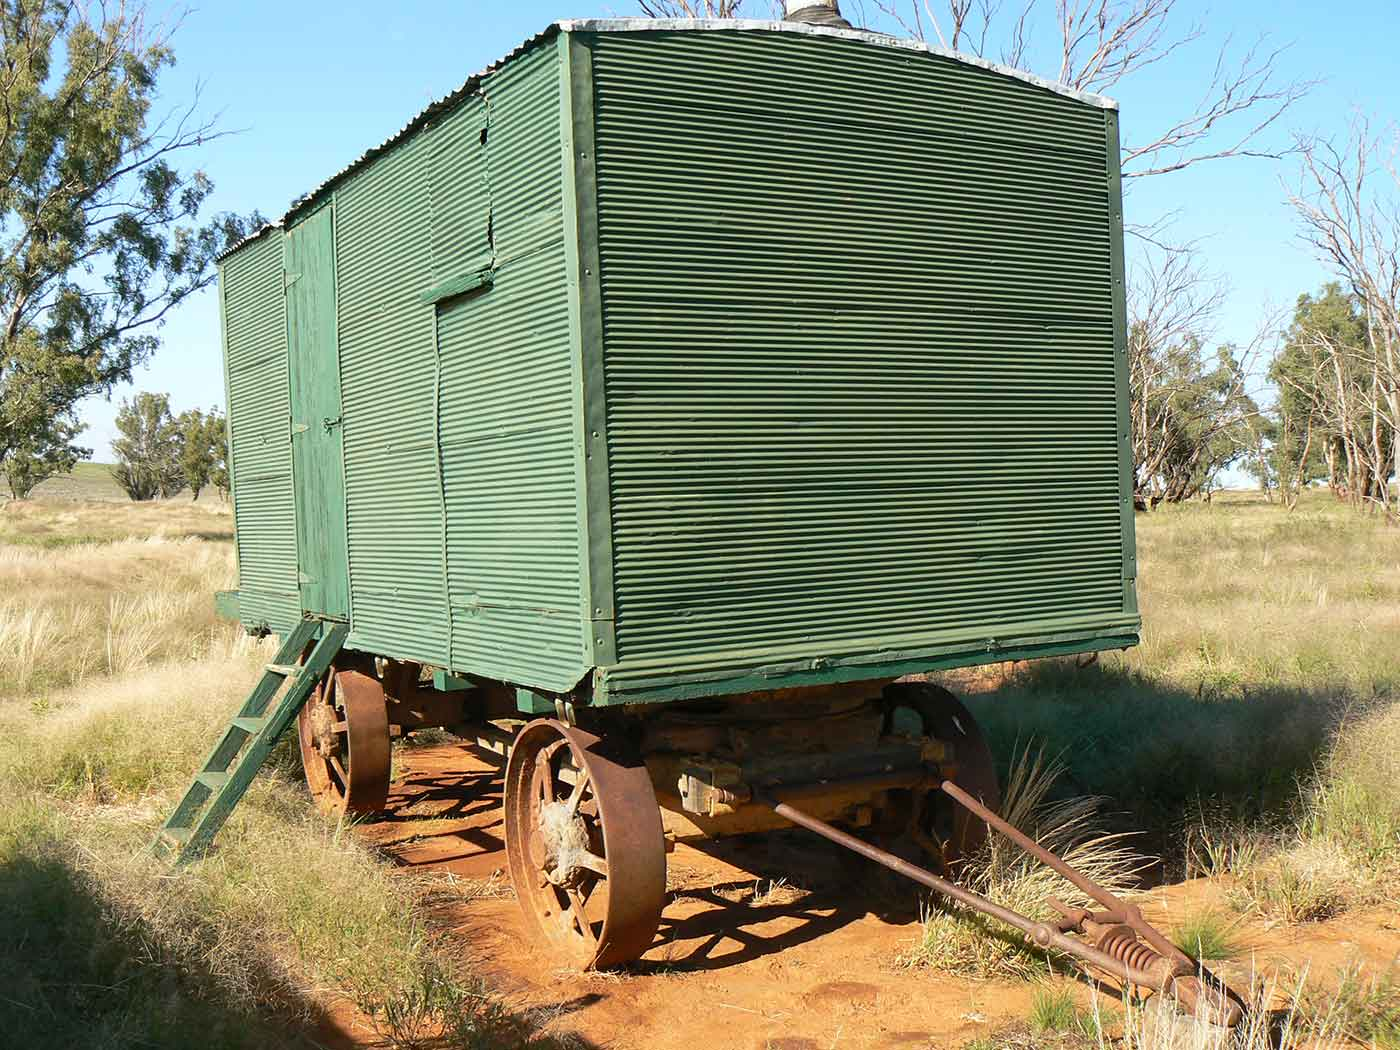 A cook's galley in the form of a metal-clad, timber and iron-framed box raised on wagon wheels.